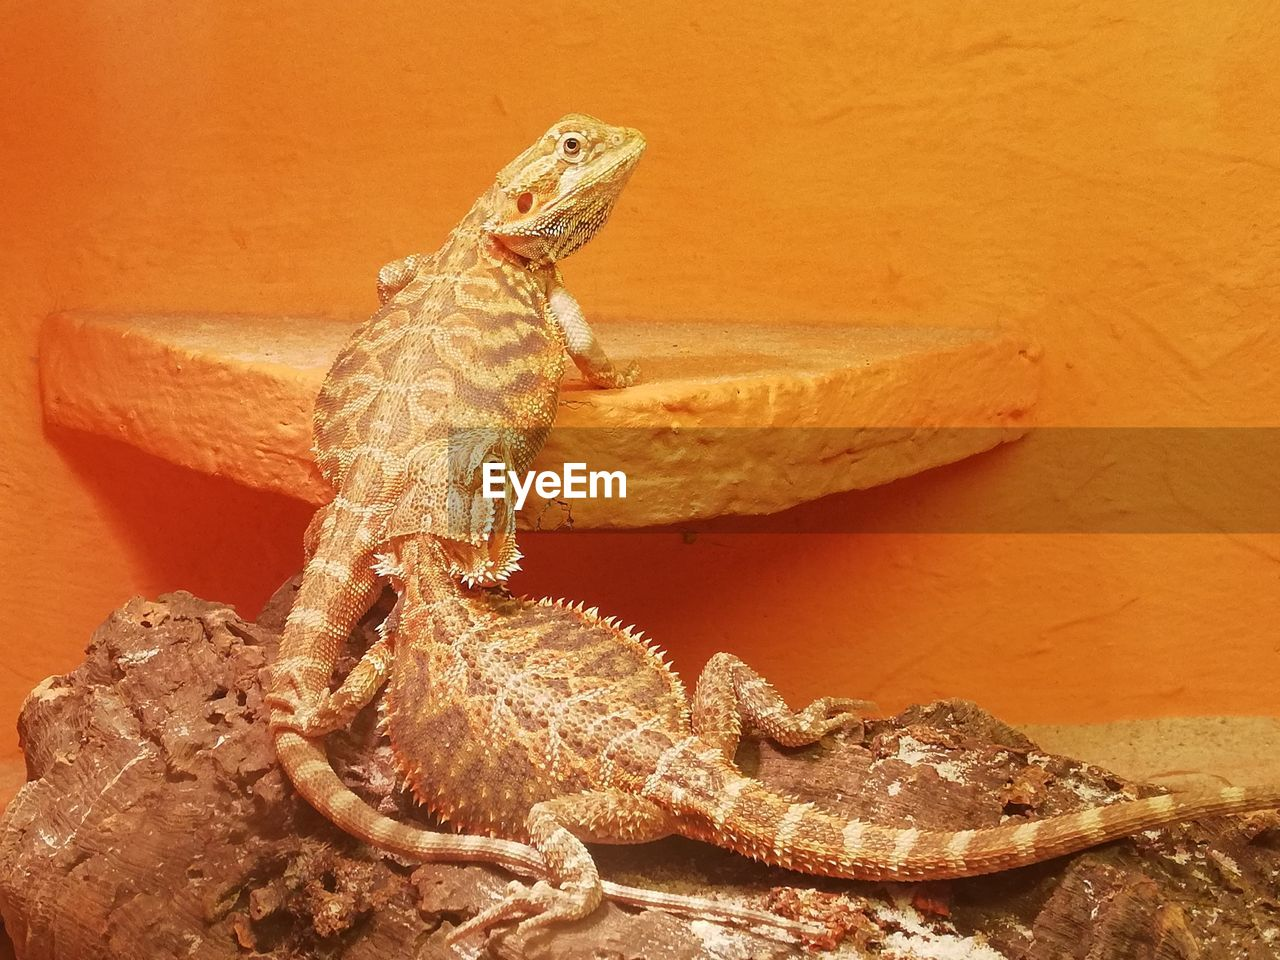 animal themes, animal, animals in the wild, reptile, one animal, animal wildlife, lizard, vertebrate, bearded dragon, no people, close-up, rock, rock - object, solid, nature, outdoors, animal body part, day, zoology, animal scale